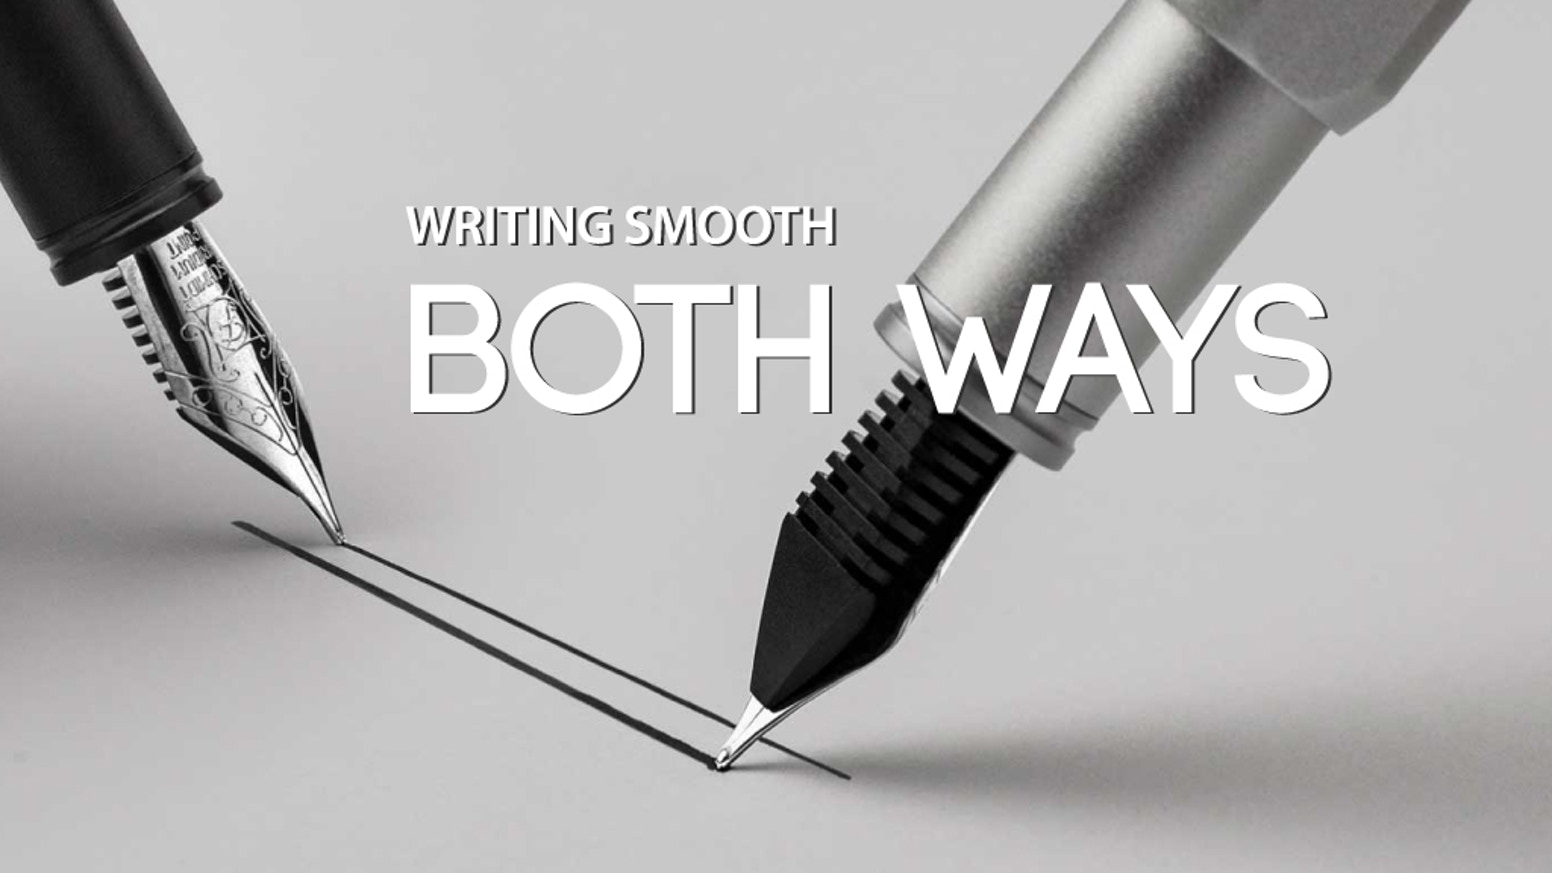 Patented nib ground by artisanpromises distinctive line widths and consistent ink flow from one singlenib.